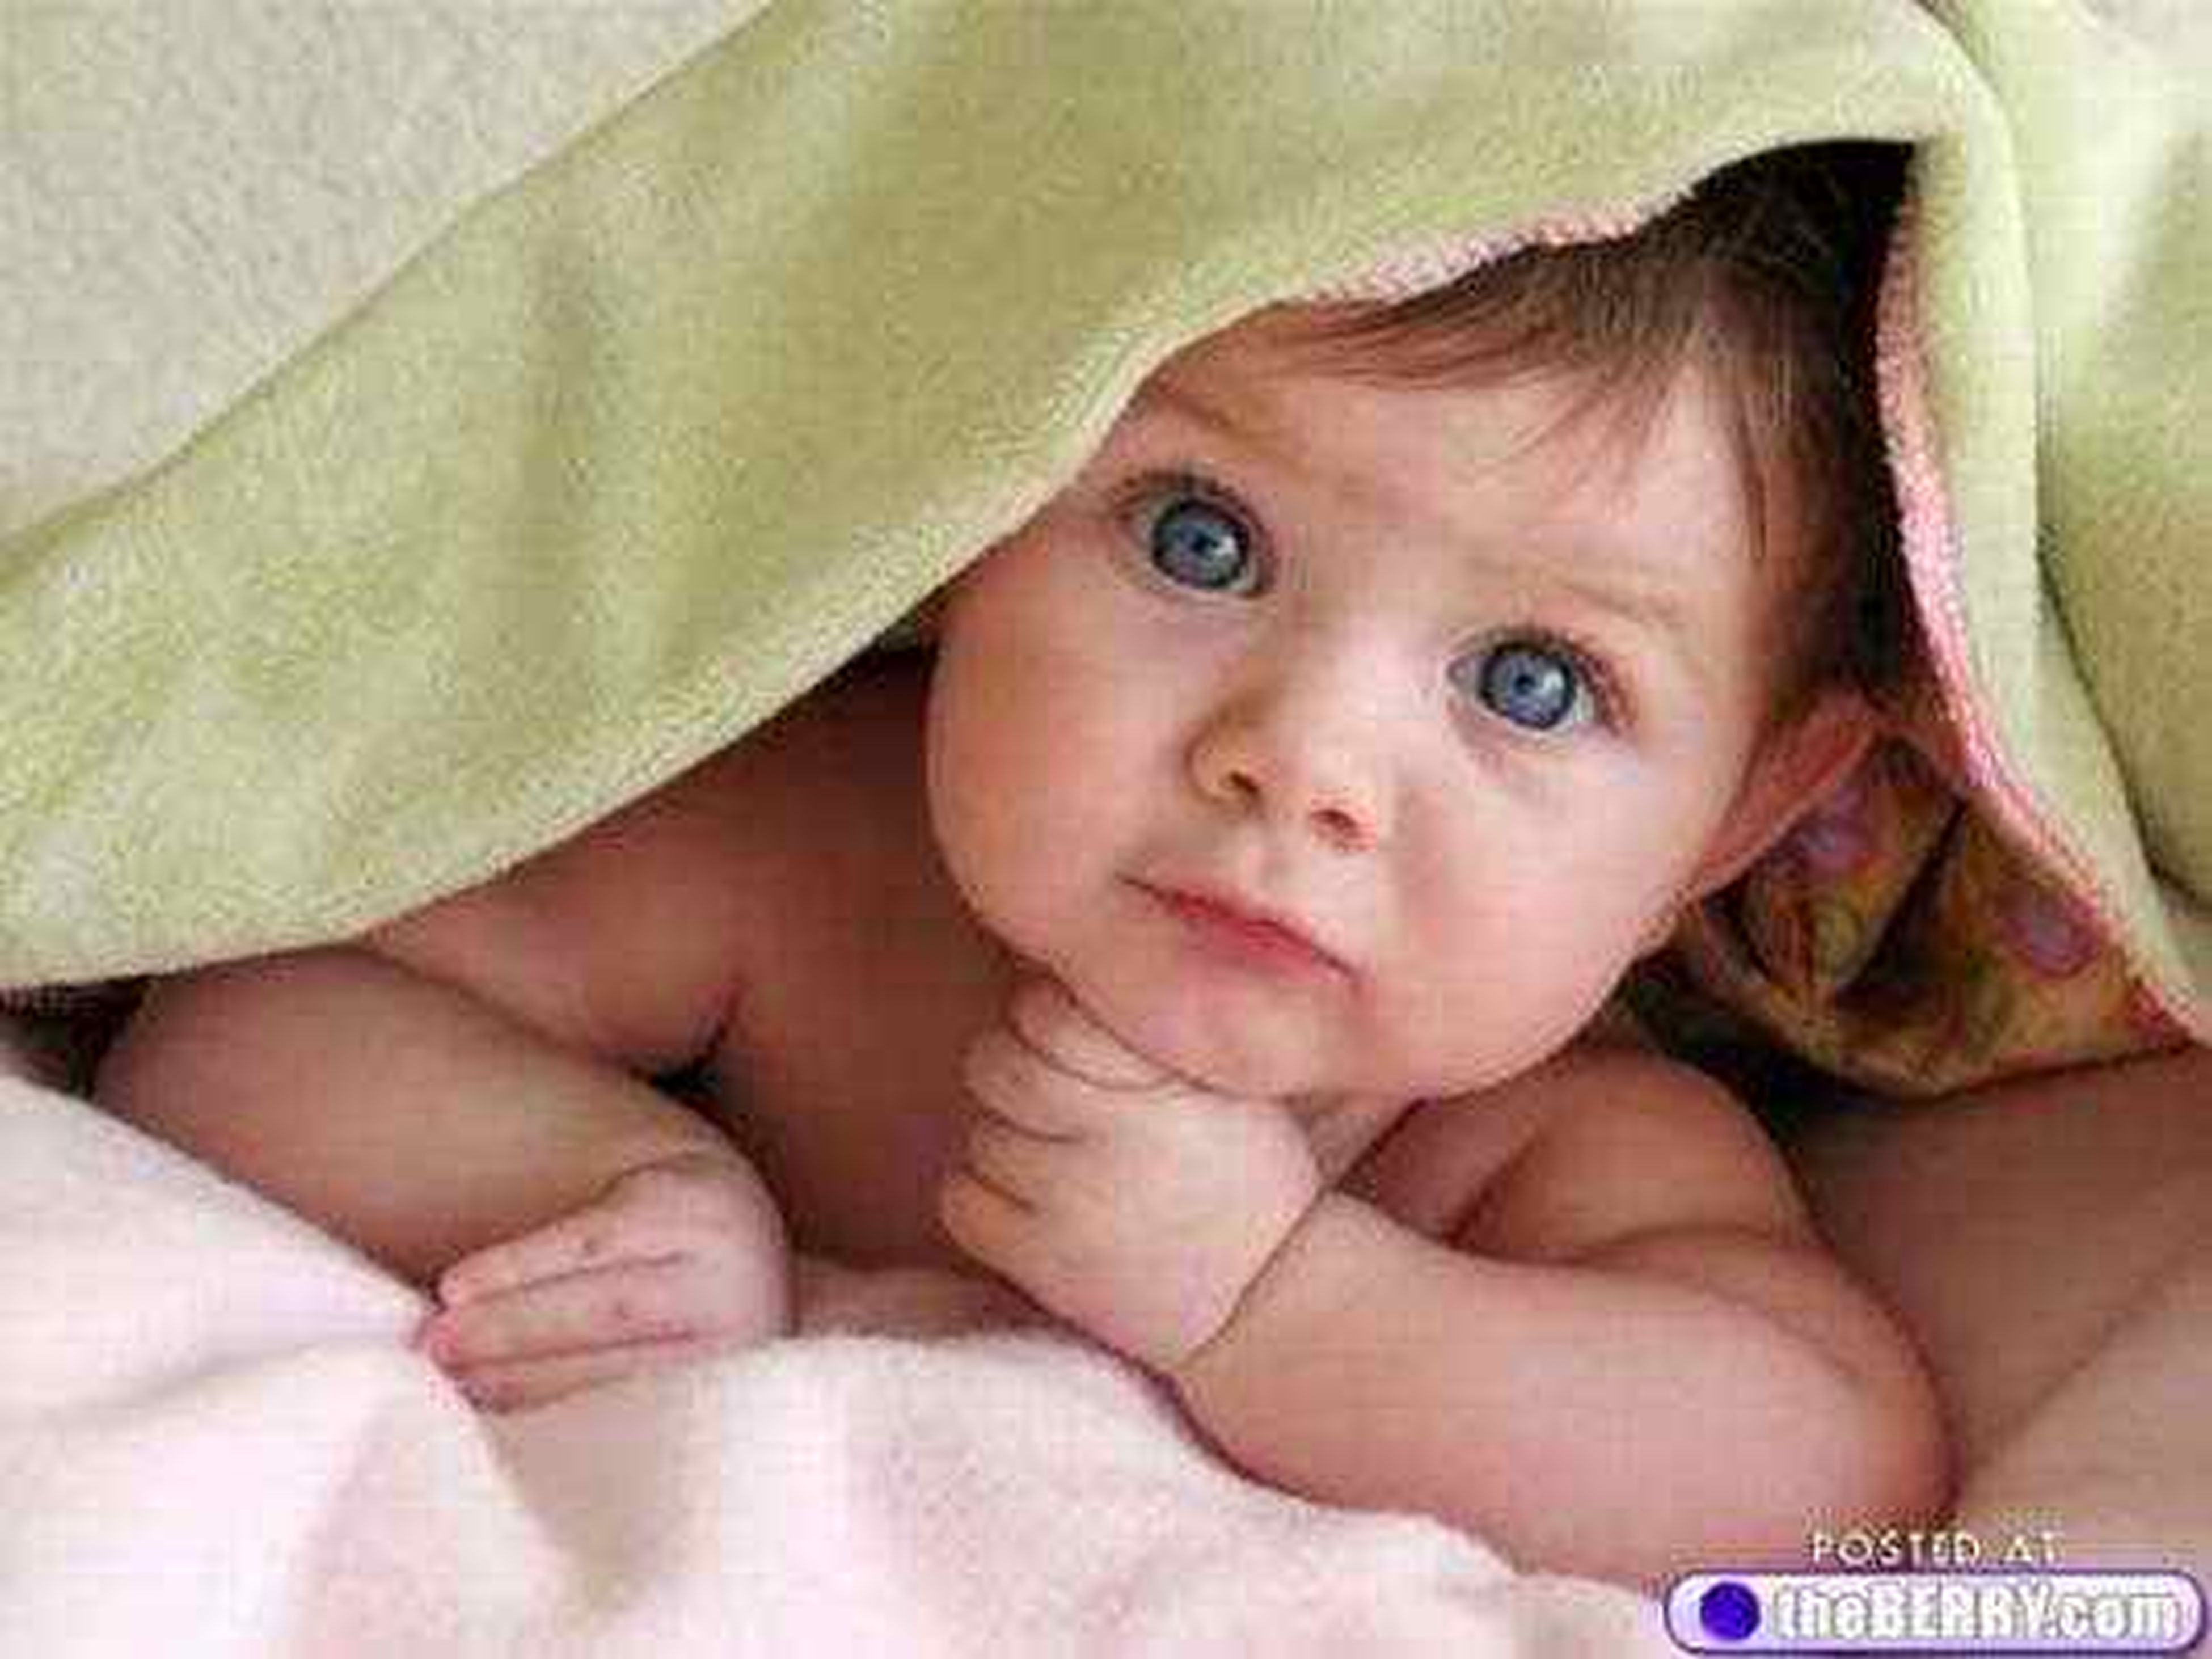 childhood, indoors, innocence, cute, baby, babyhood, person, bed, relaxation, toddler, lifestyles, lying down, unknown gender, elementary age, sleeping, boys, leisure activity, close-up